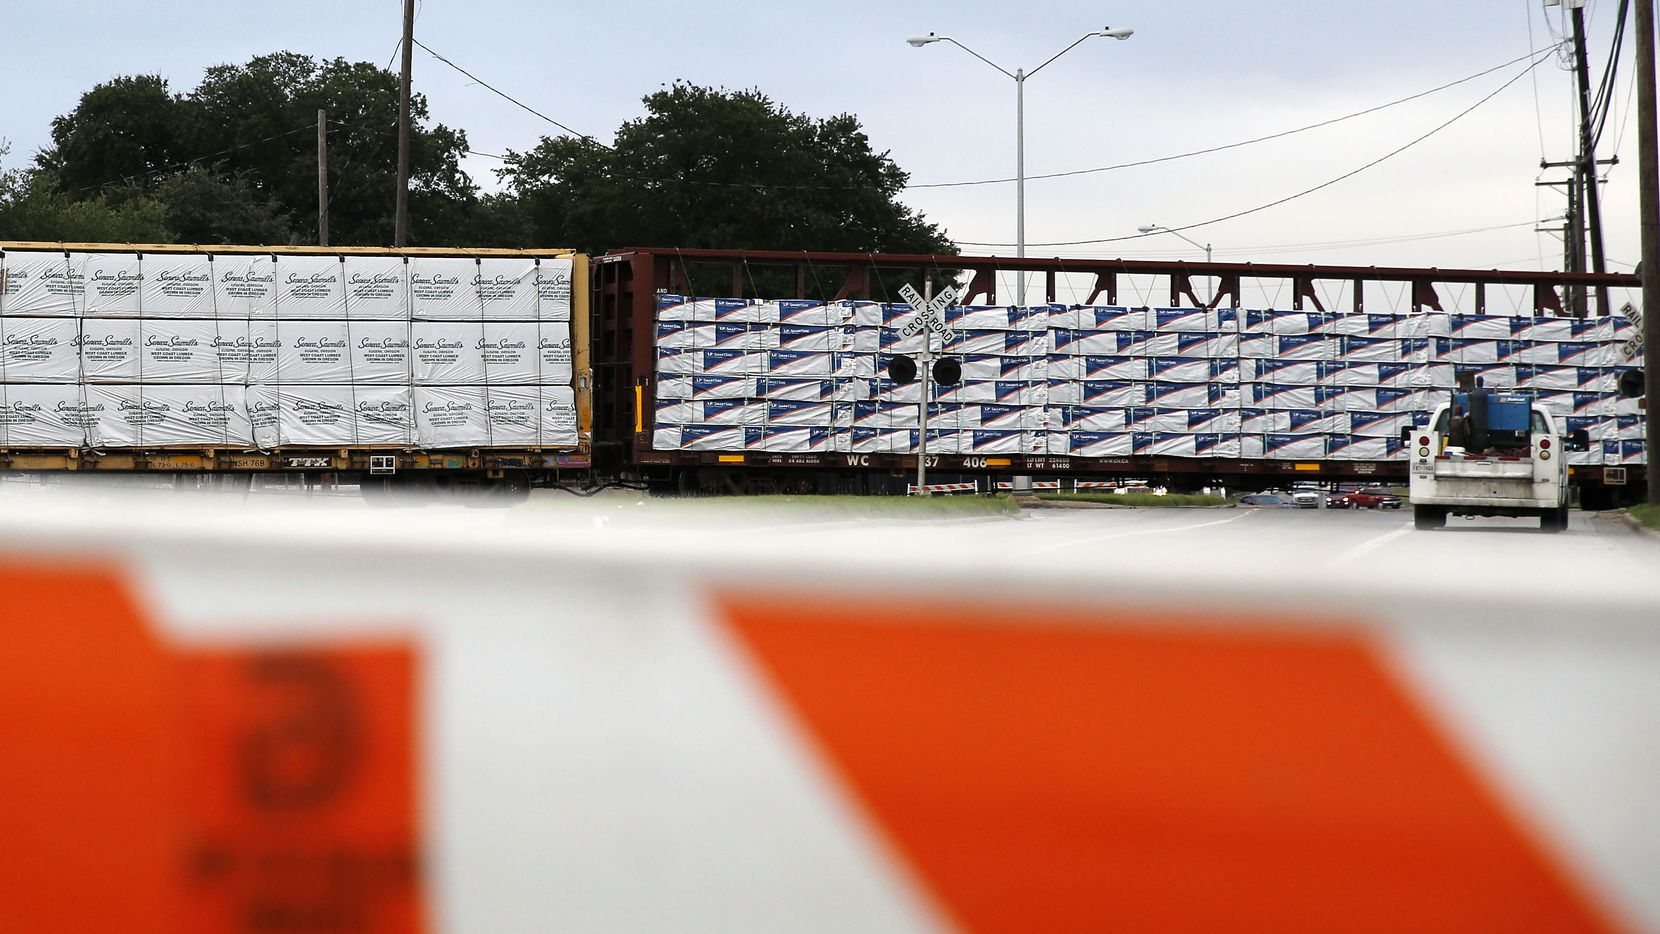 A train derailed near the intersection of South Haskell and Beeman avenues in Dallas on Monday.